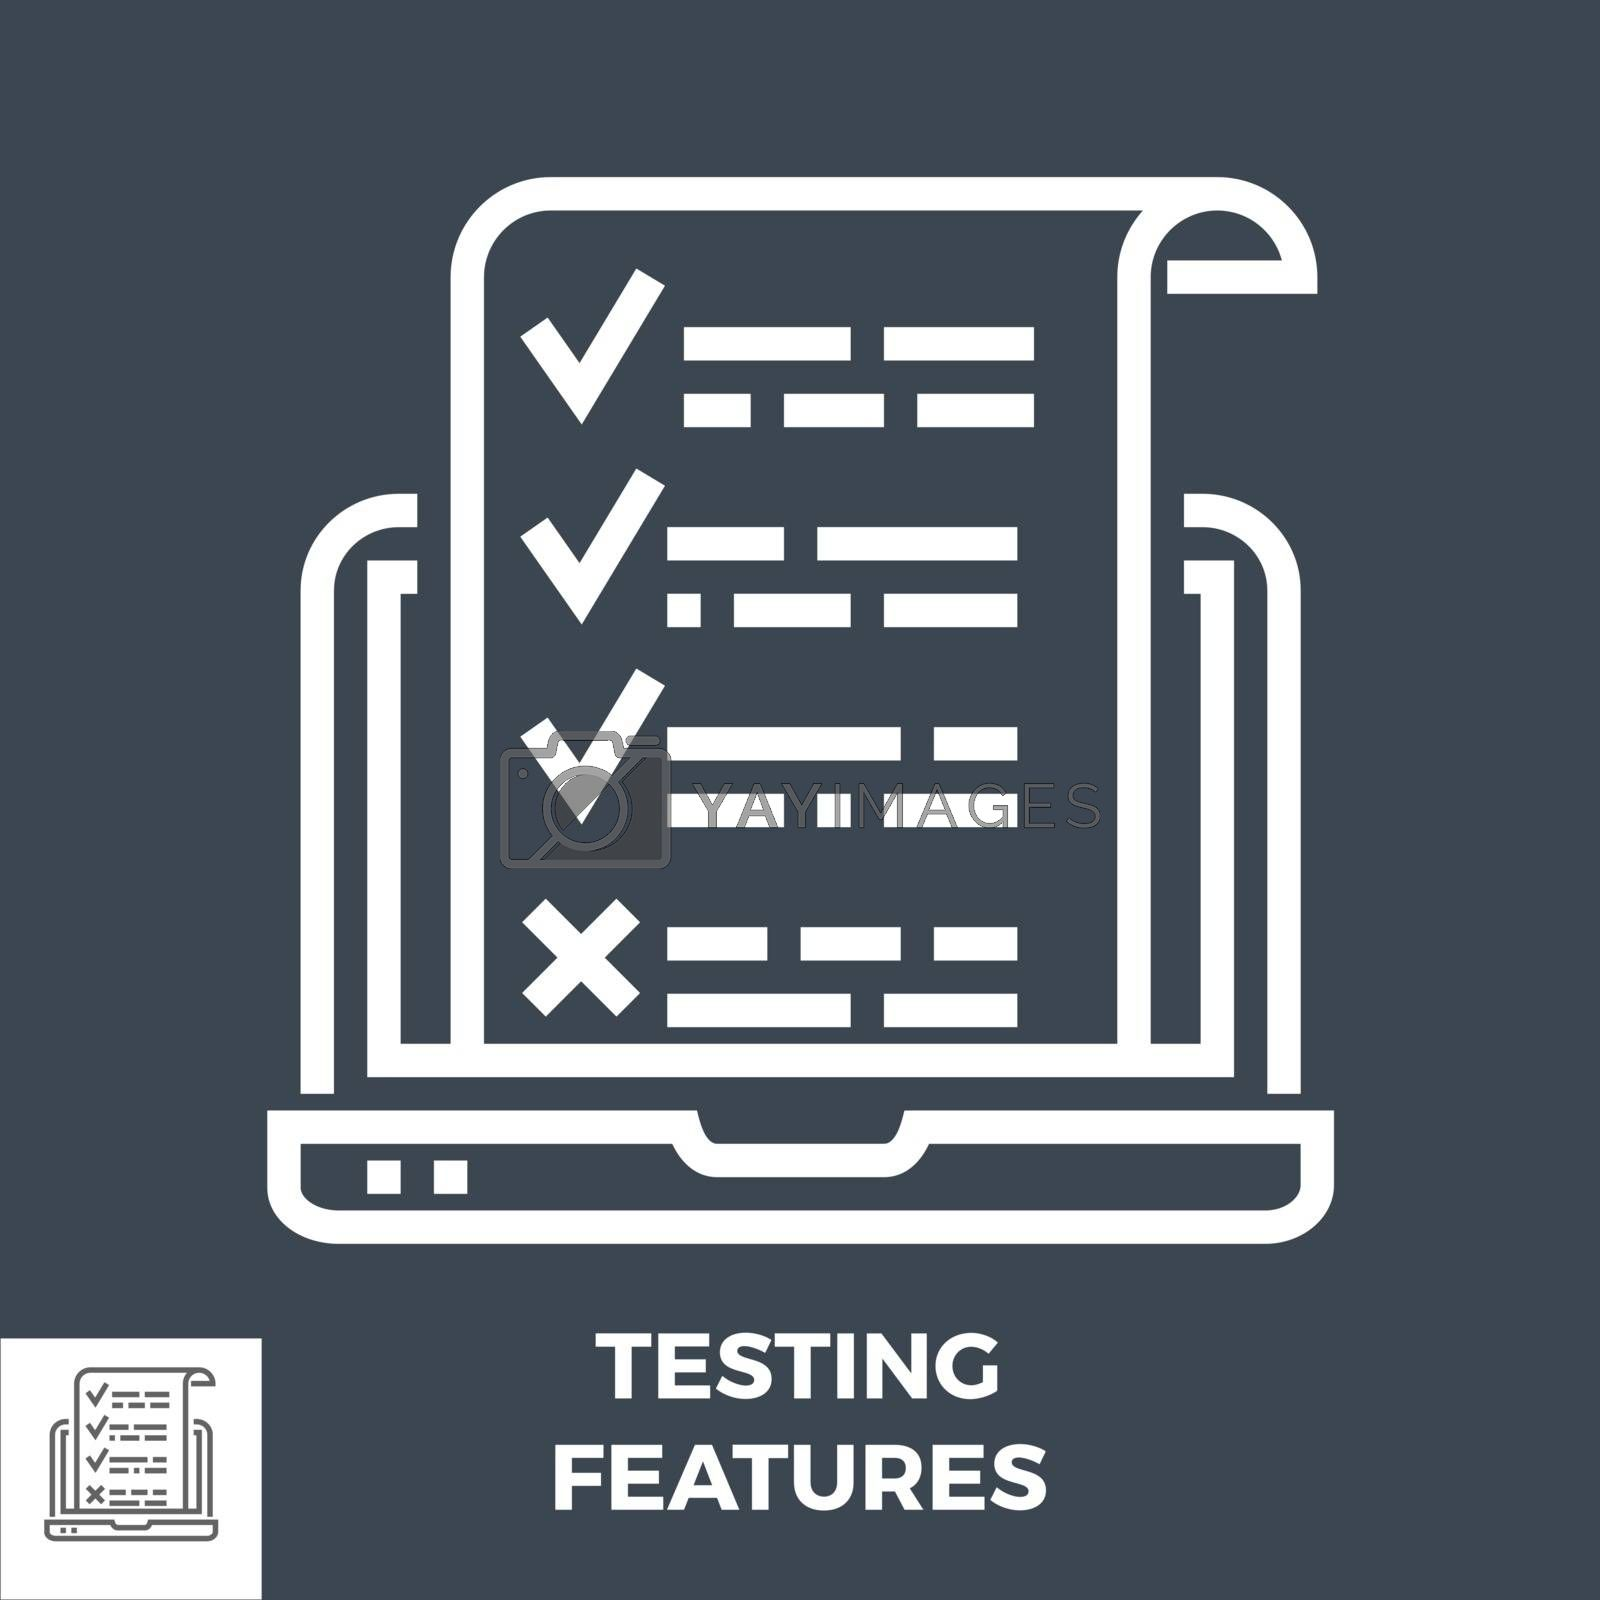 Testing Features Thin Line Vector Icon Isolated on the Black Background.